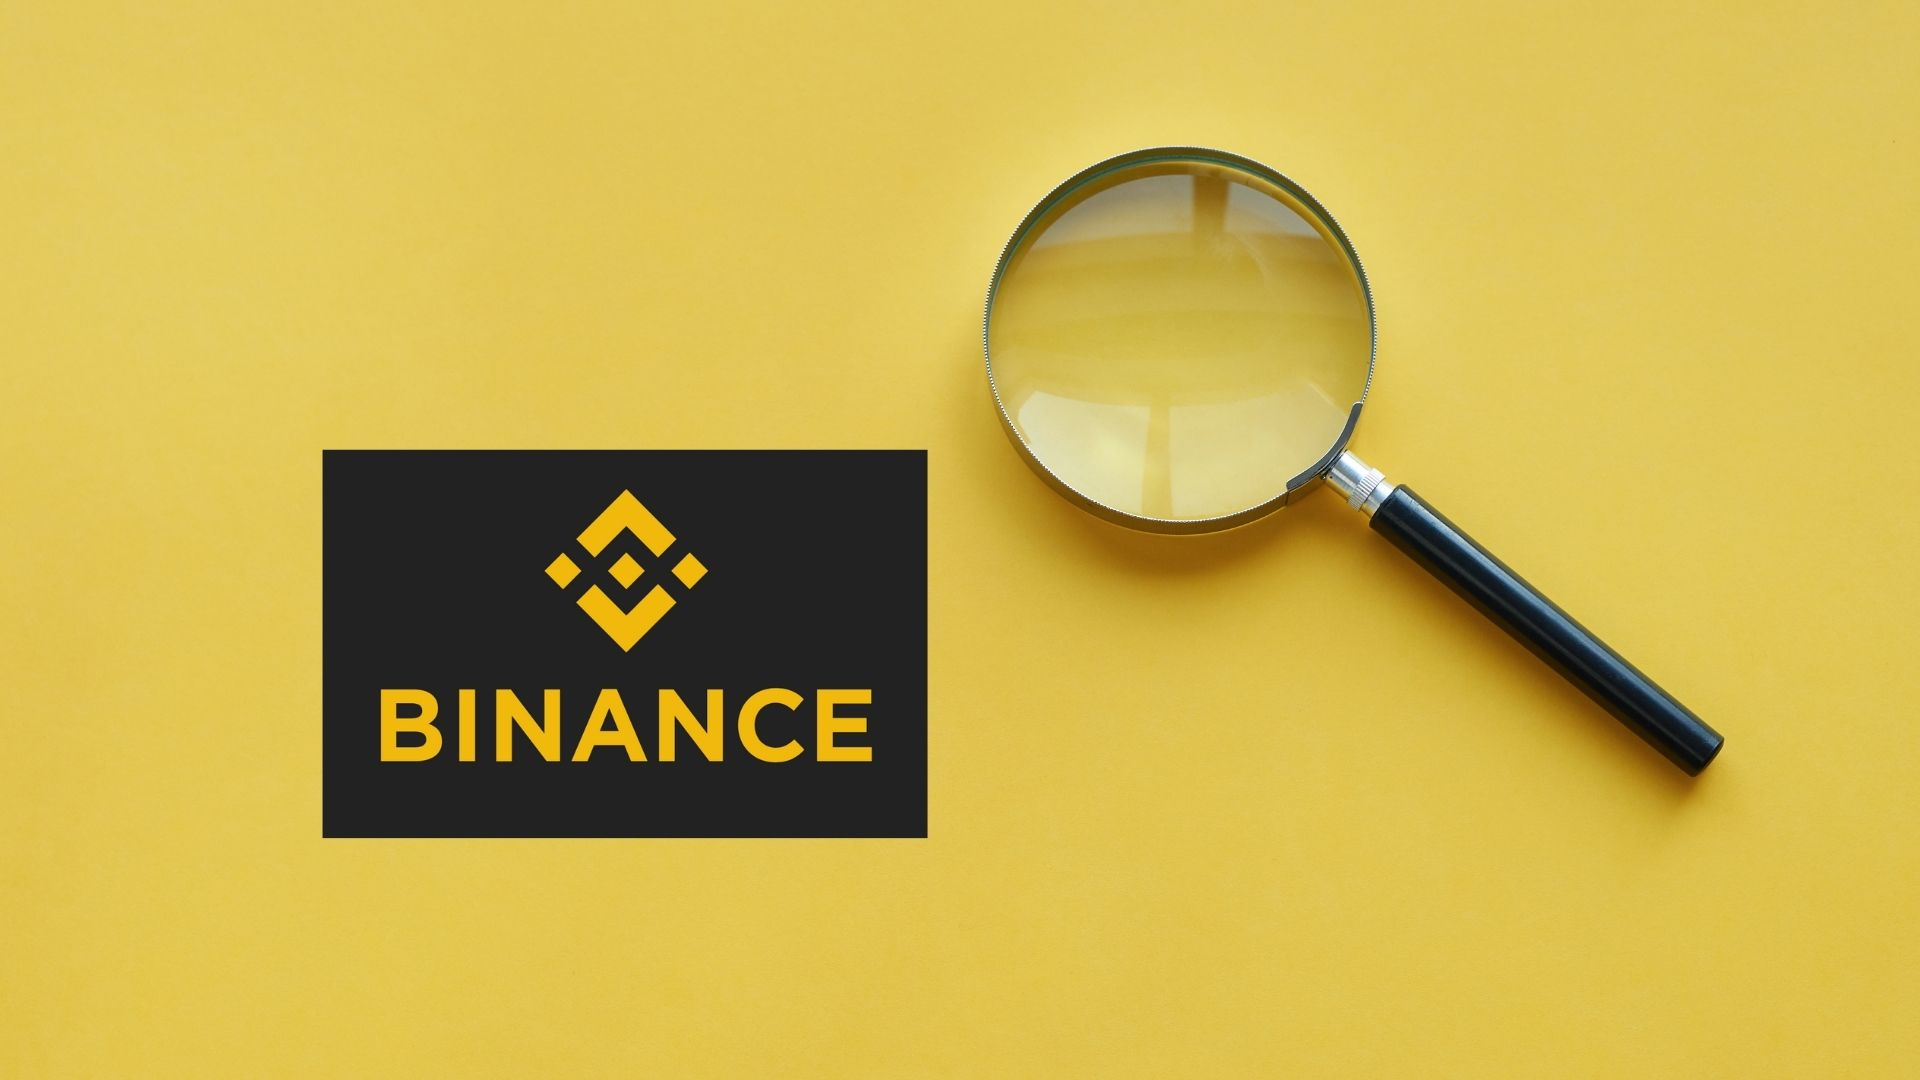 Binance faces US probe for possible insider trading and market manipulation